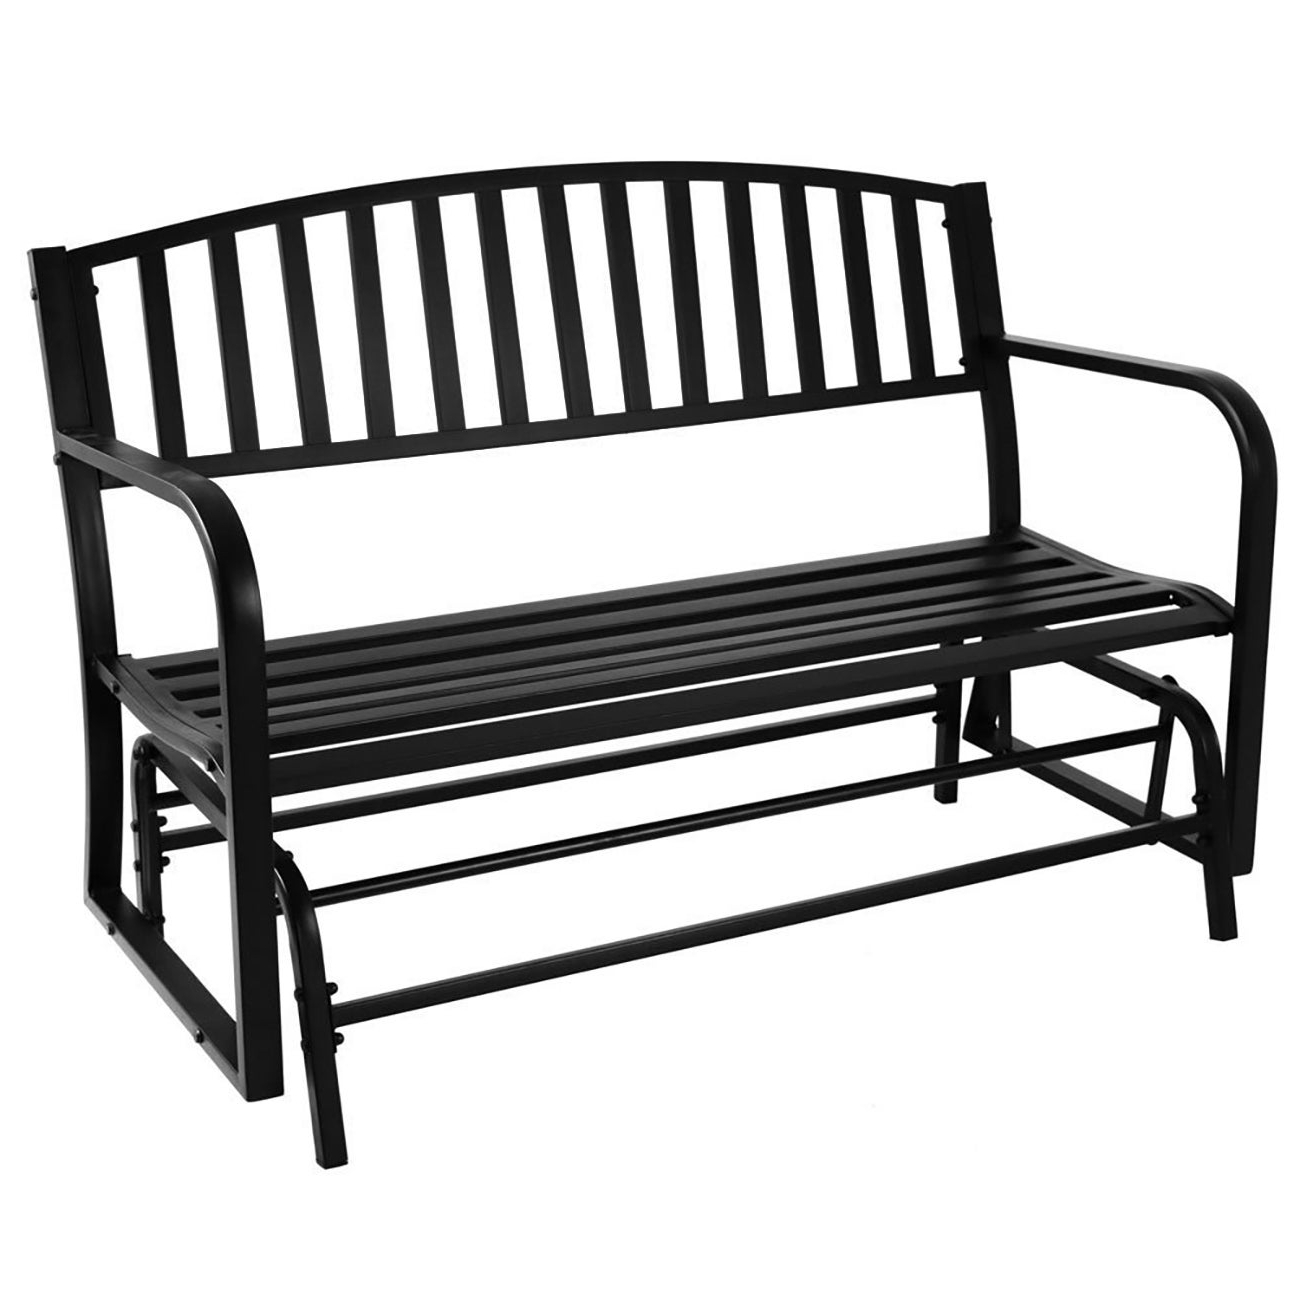 2 Person Black Steel Outdoor Swings Pertaining To Well Known Outsunny 50 L Steel Garden Bench Outdoor Patio 2 Person Park (View 7 of 25)